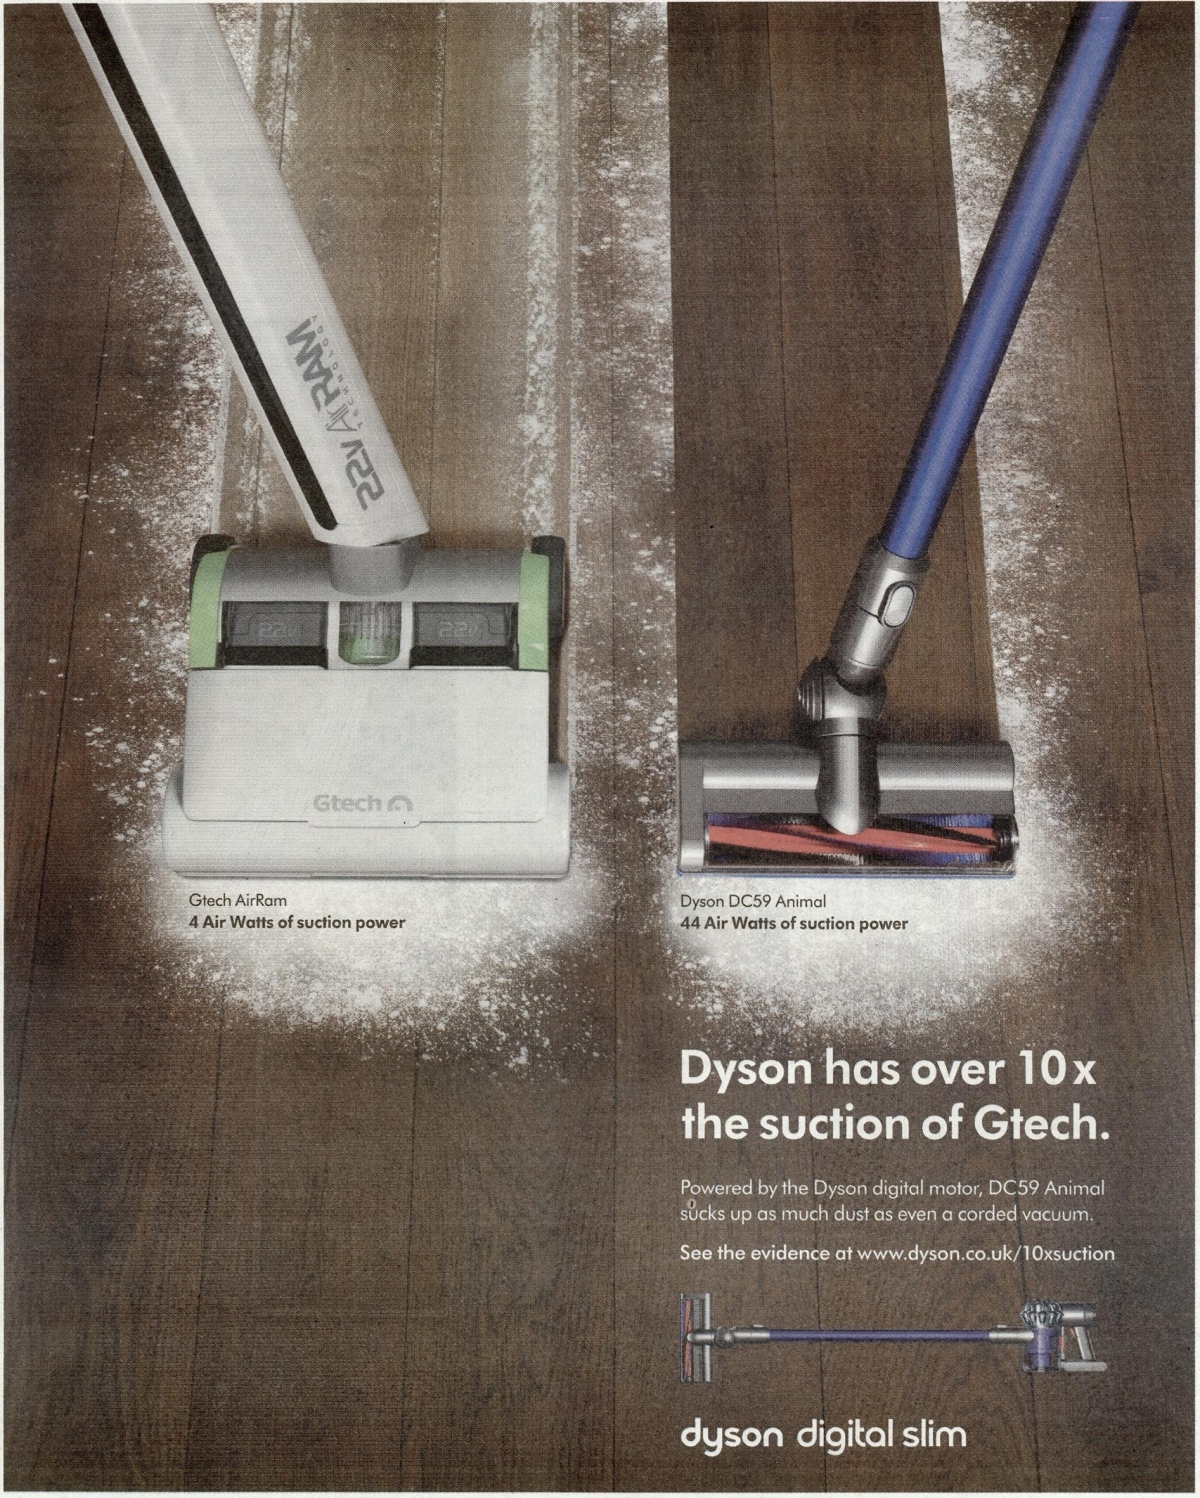 Dyson advert banned by ASA